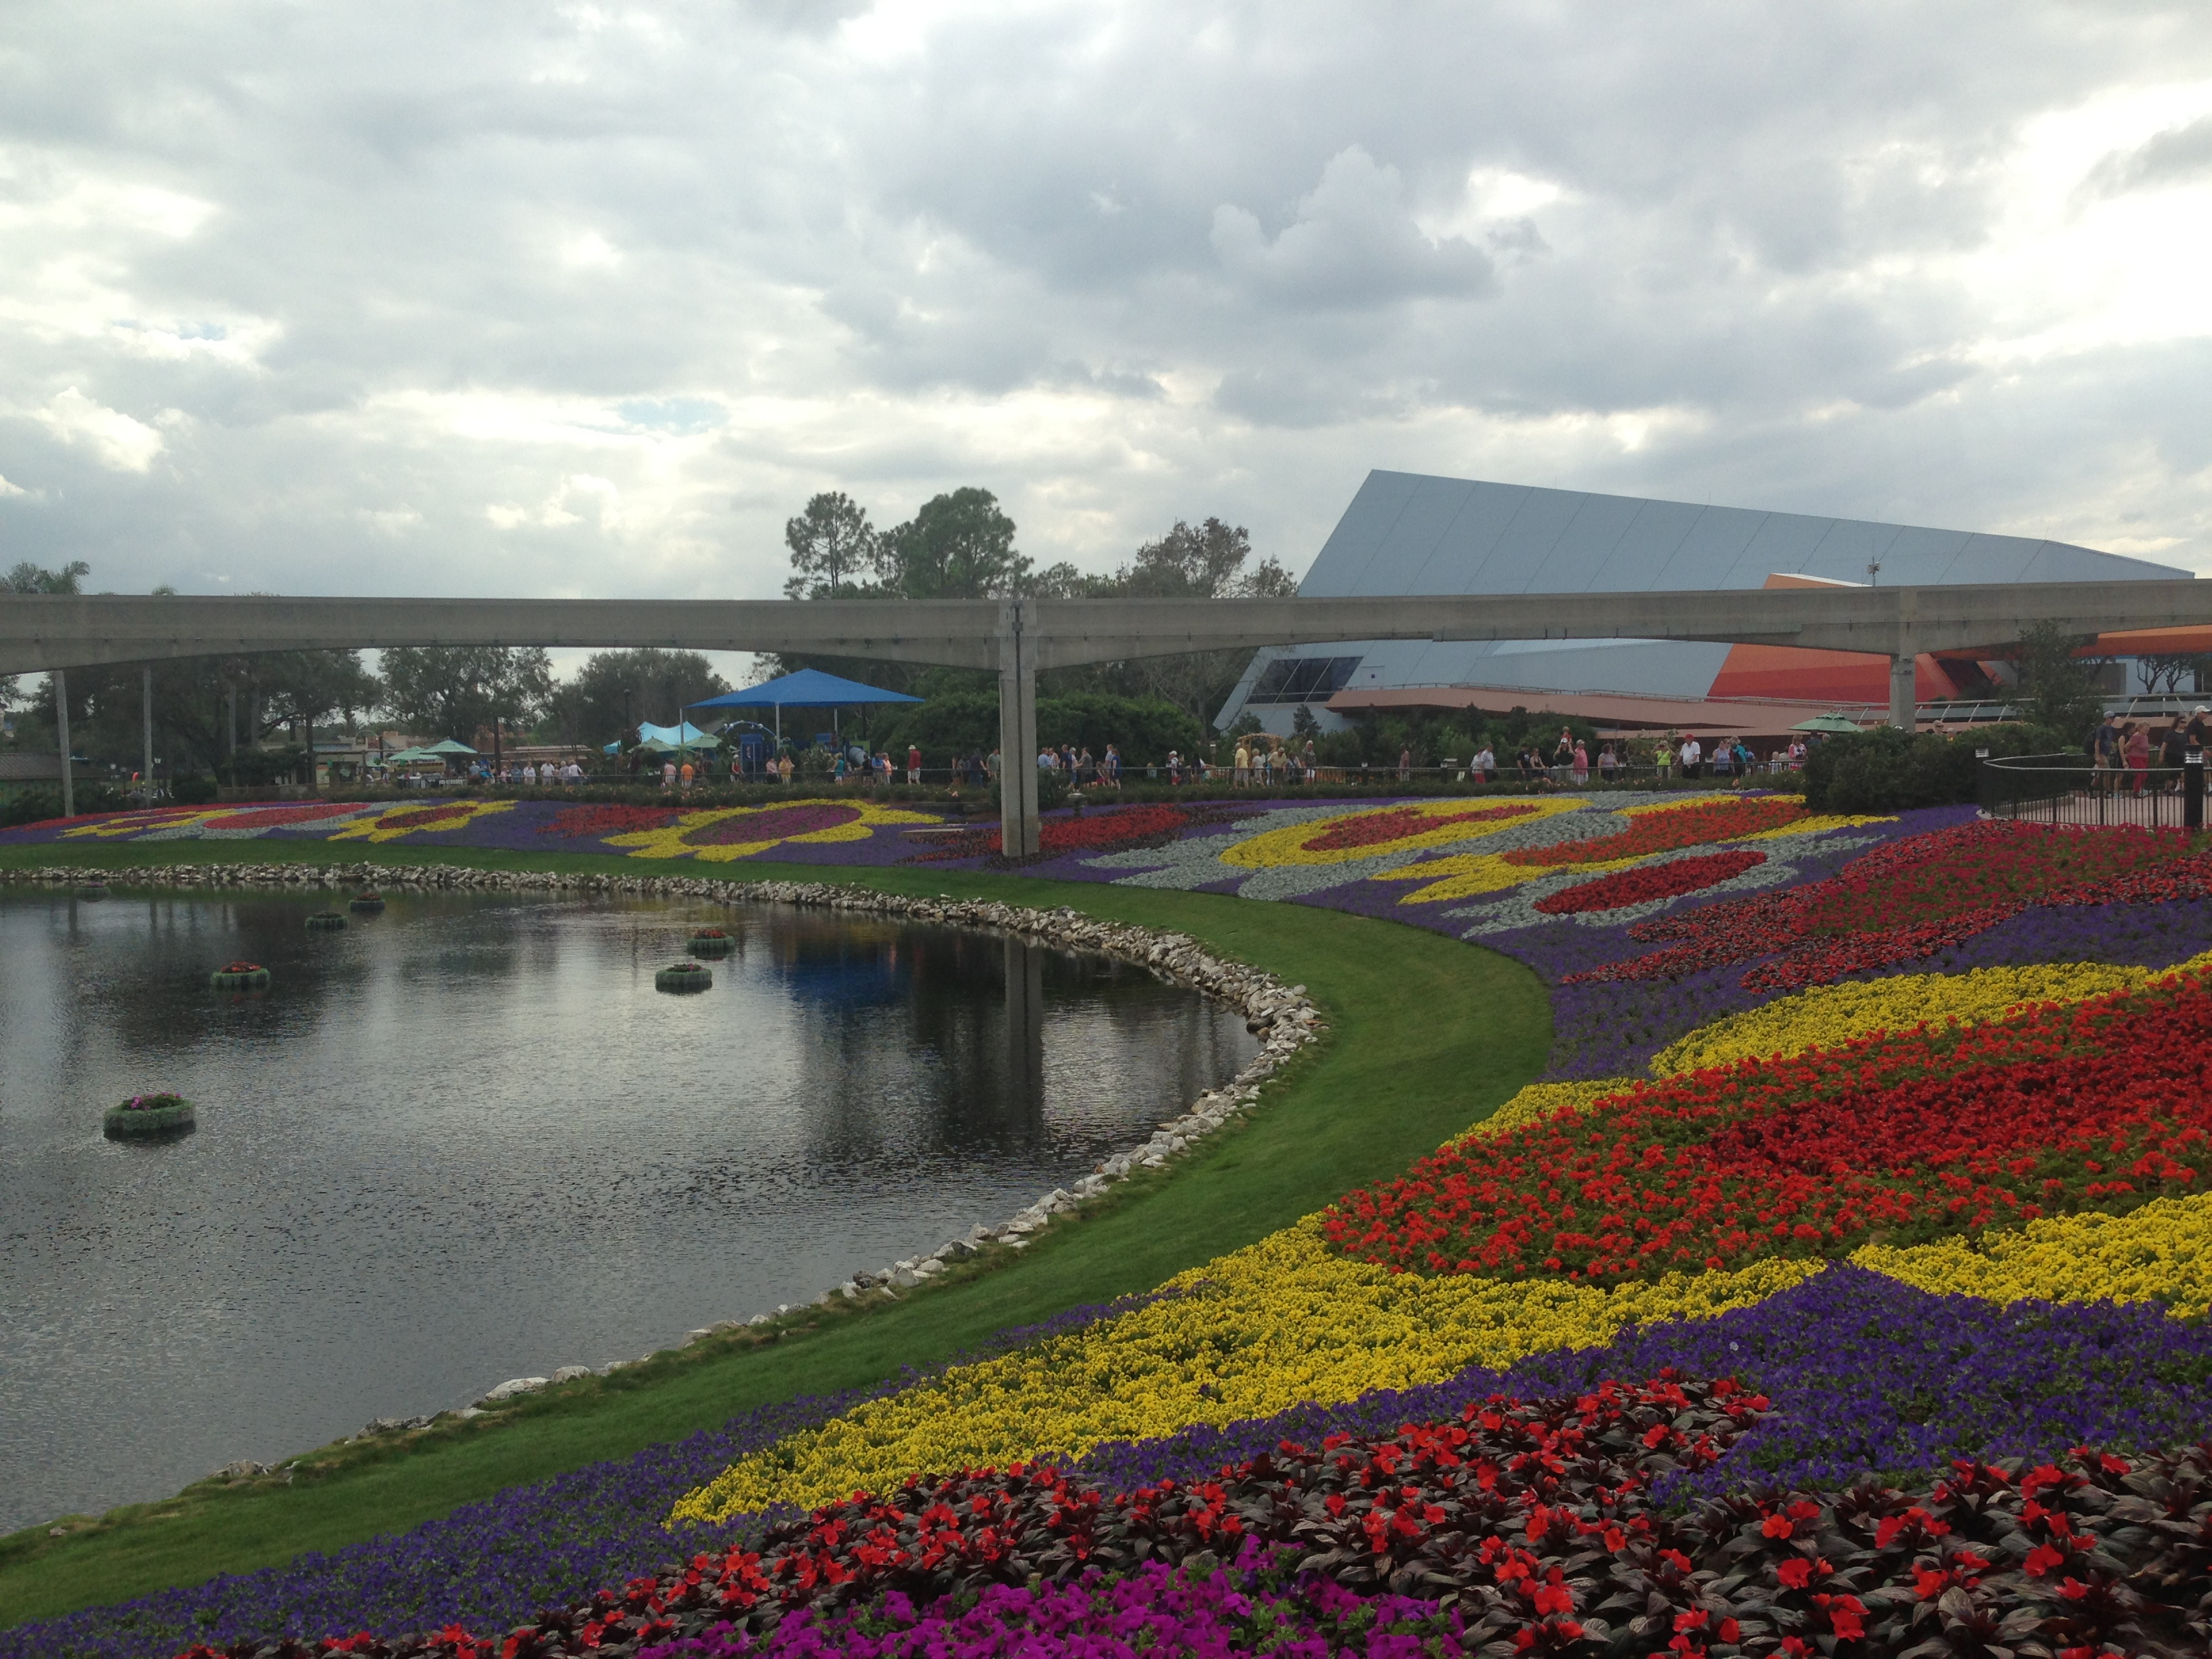 What To Expect From the Epcot International Flower & Garden Festival